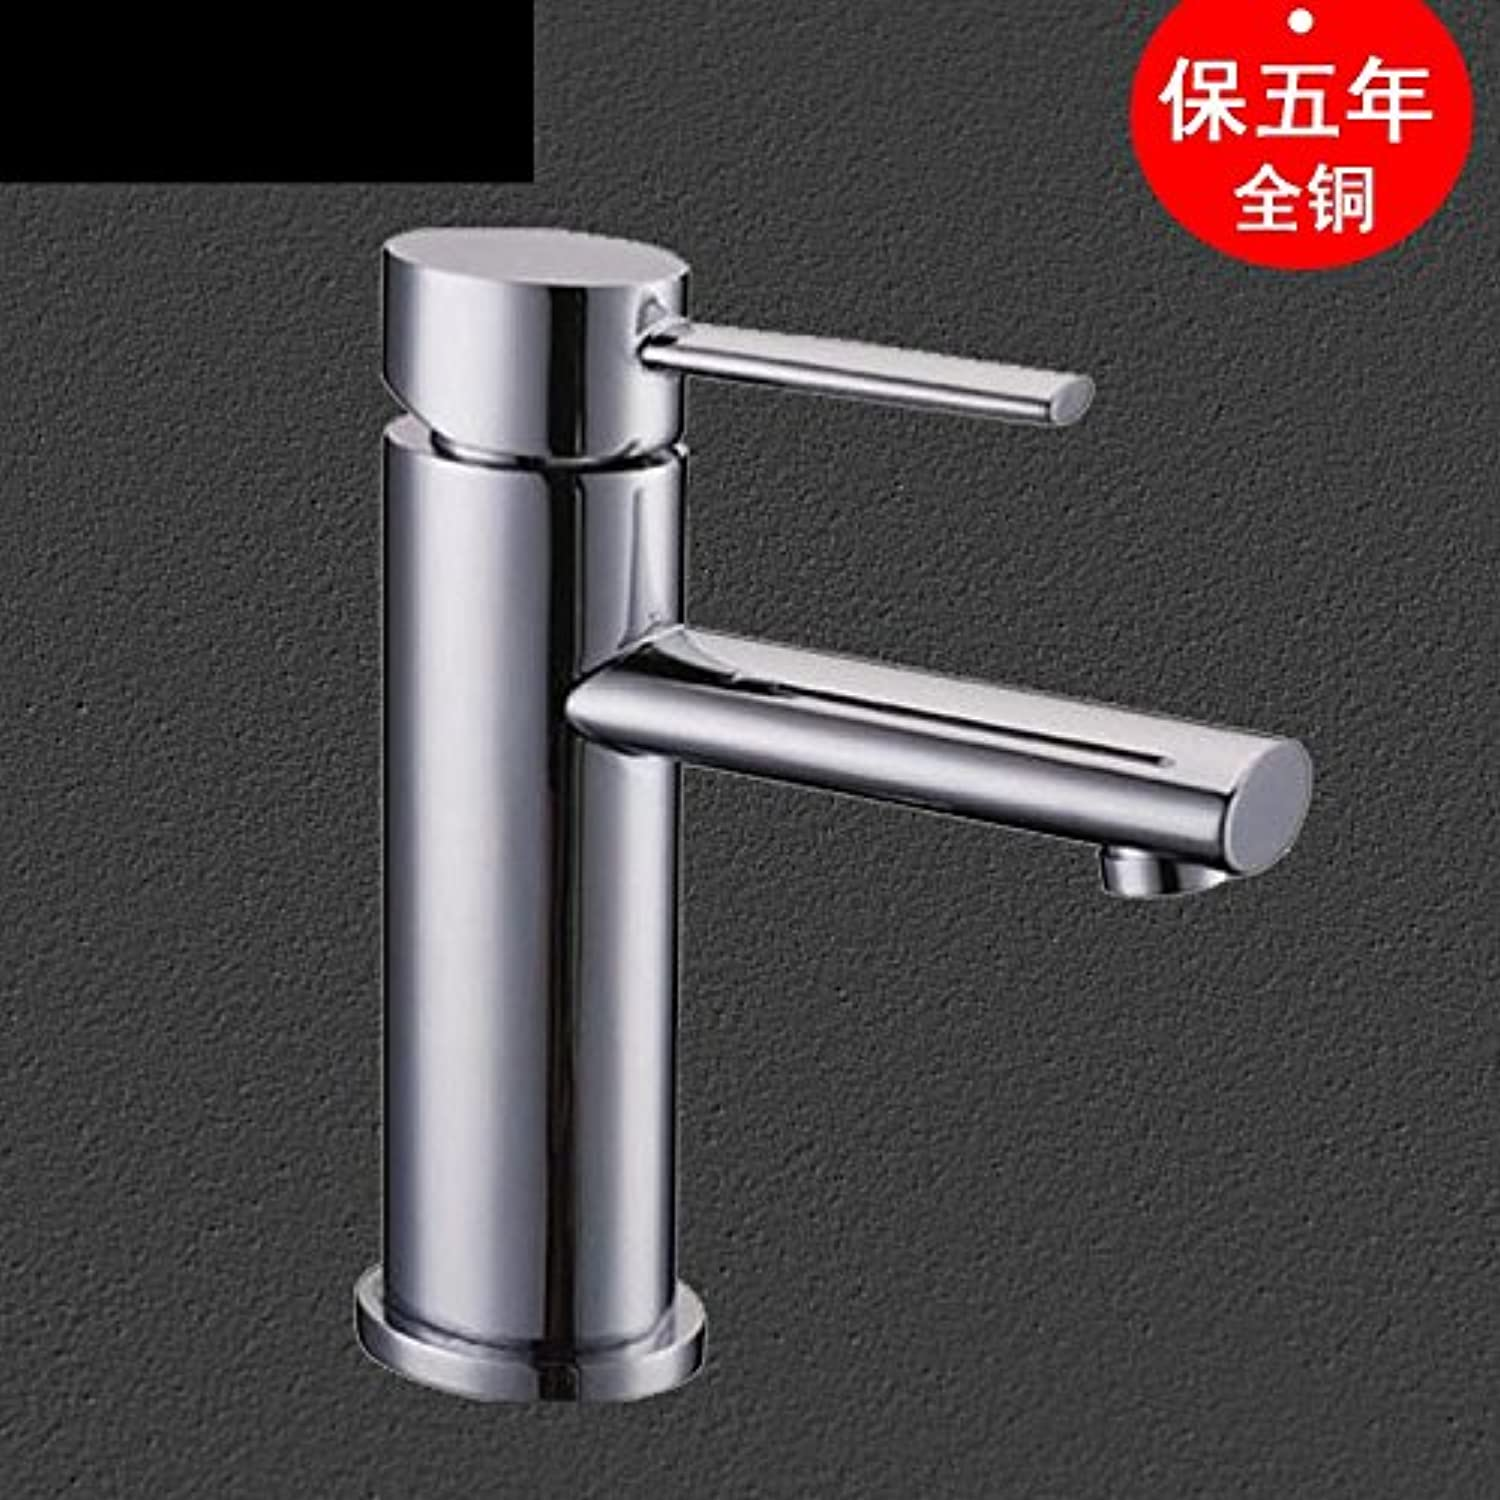 Hlluya Professional Sink Mixer Tap Kitchen Faucet The oval full copper hot and cold lowered vanity area with basin mixer